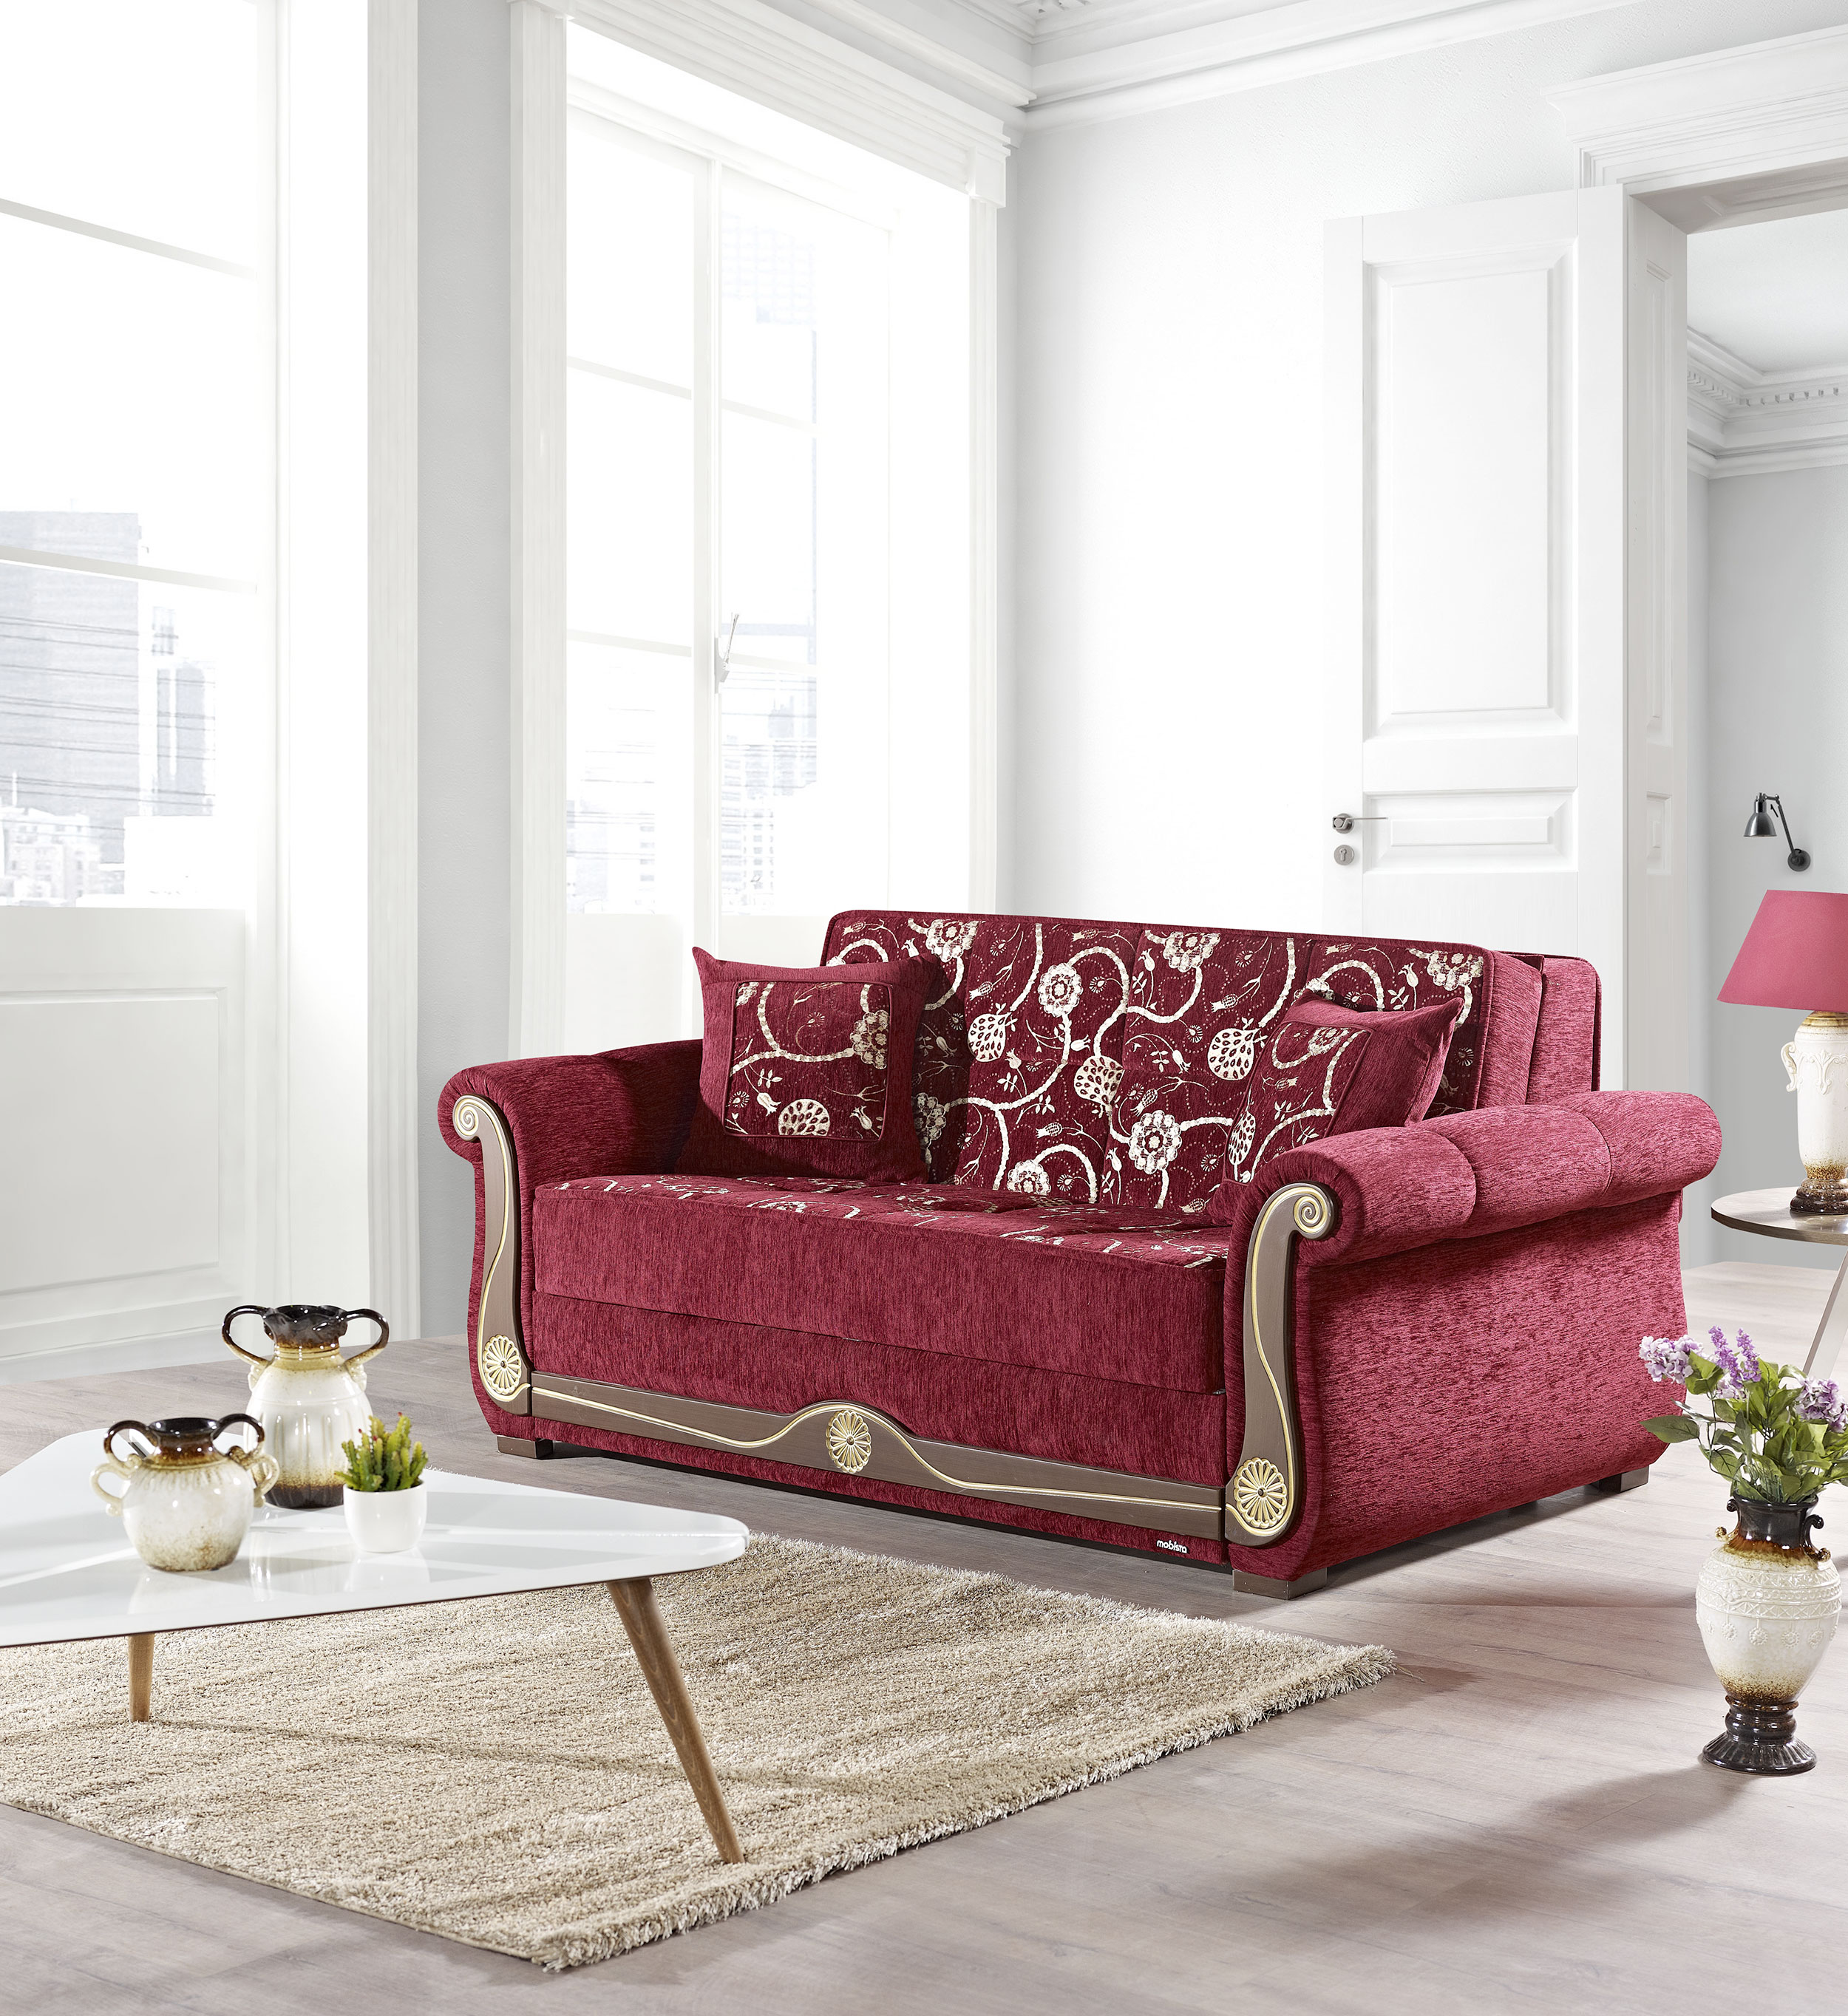 American Style Prime Evita Flowers Burgundy Loveseat Bed by Mobista